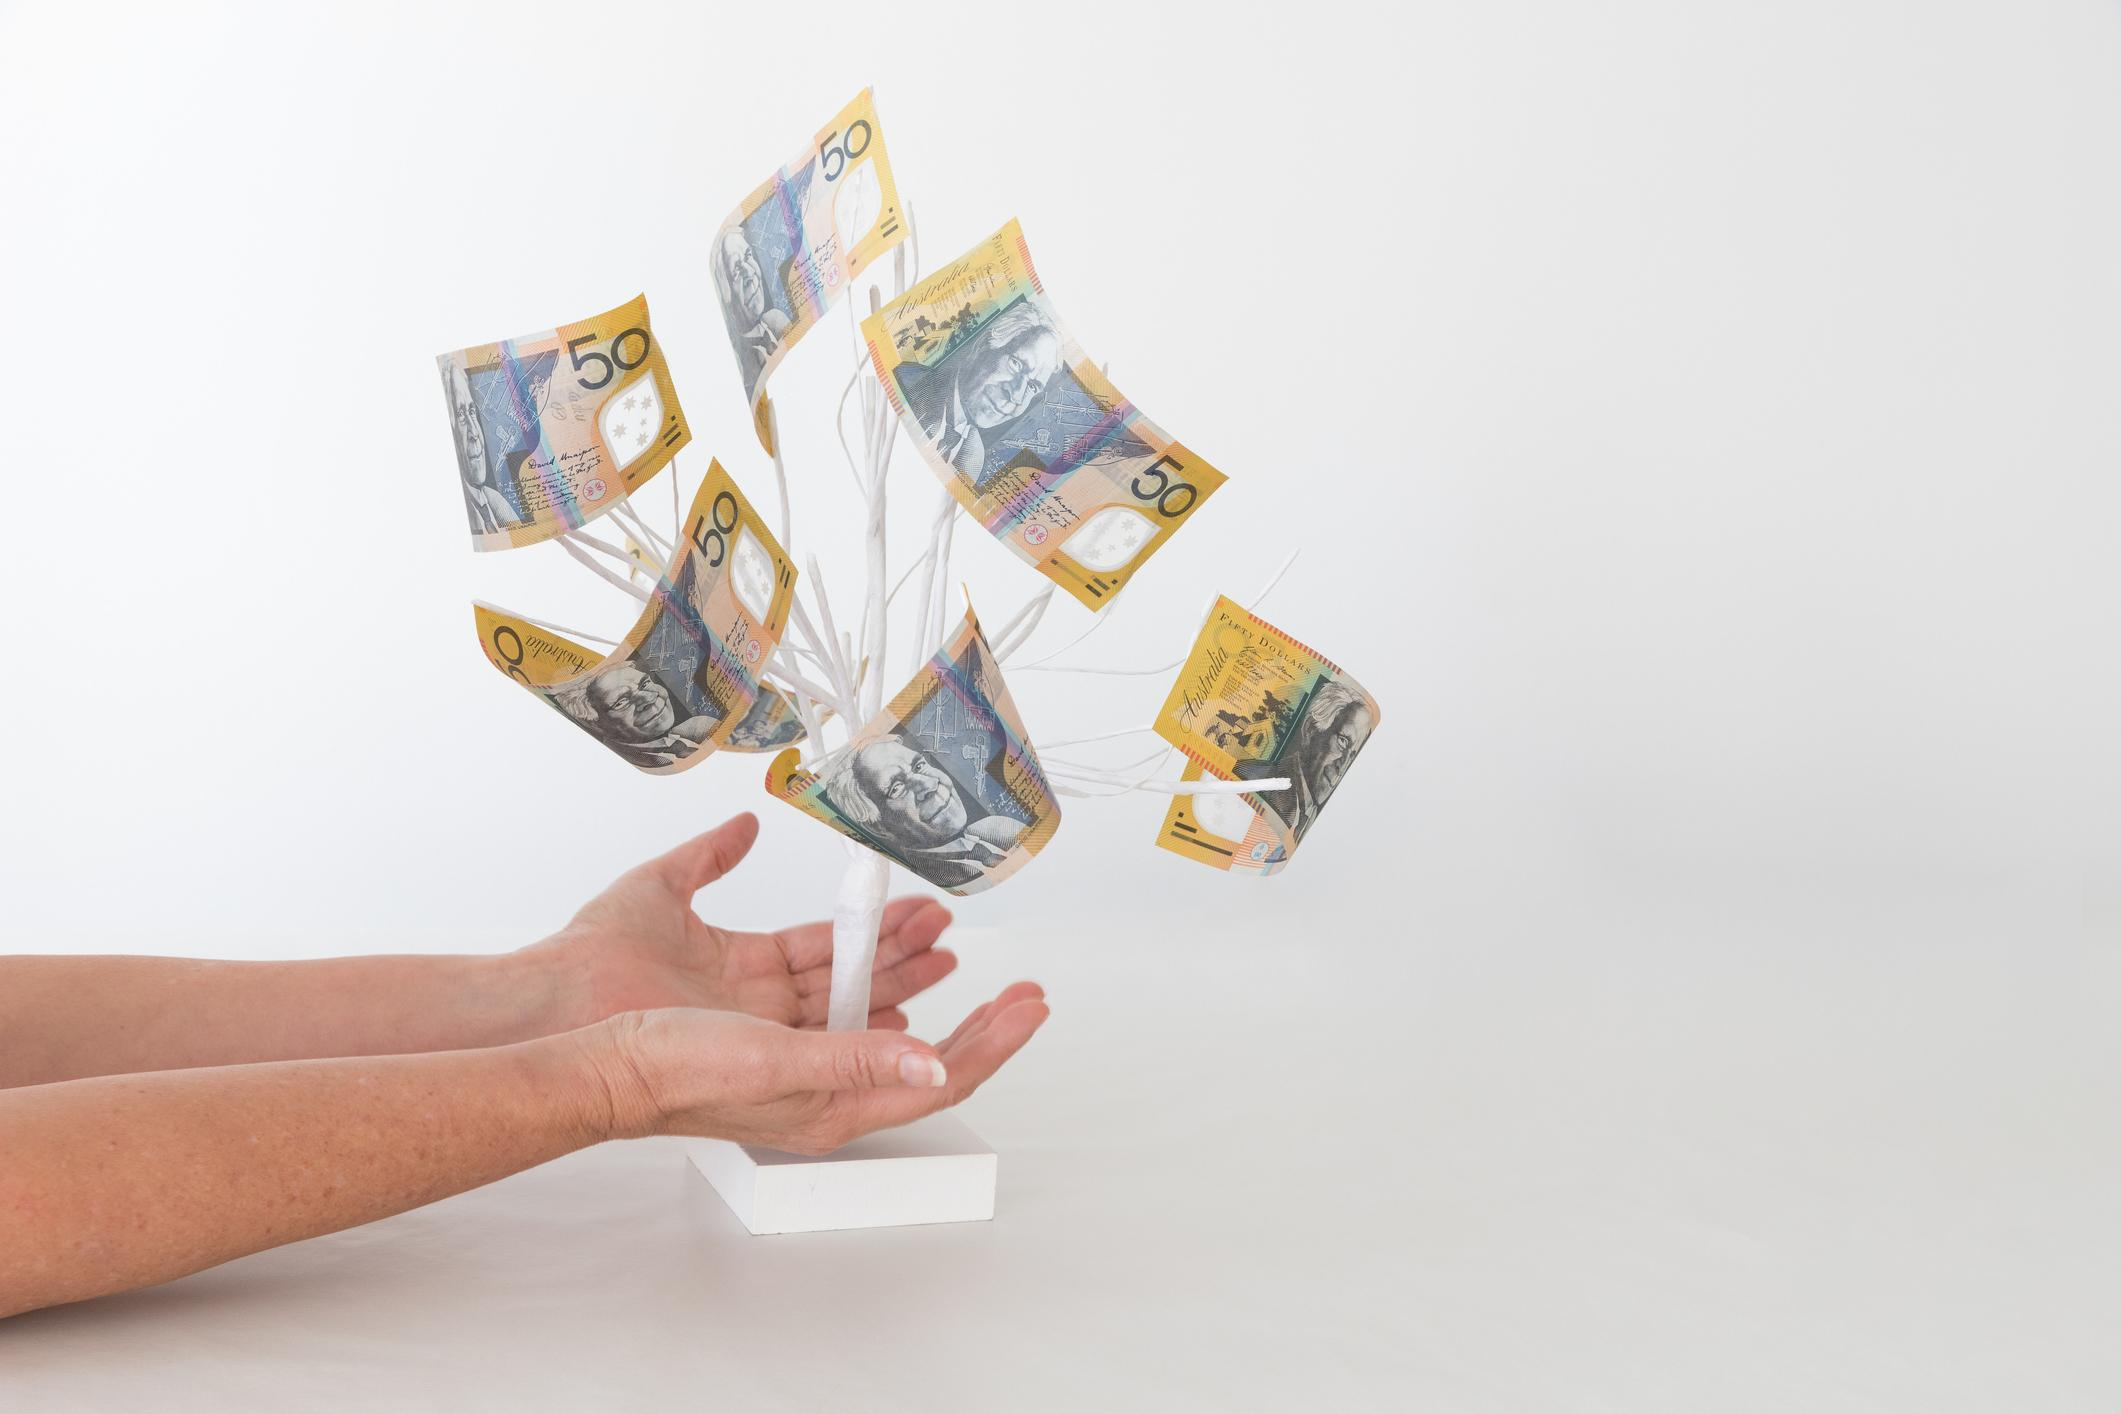 How much should I have in my superannuation by now?